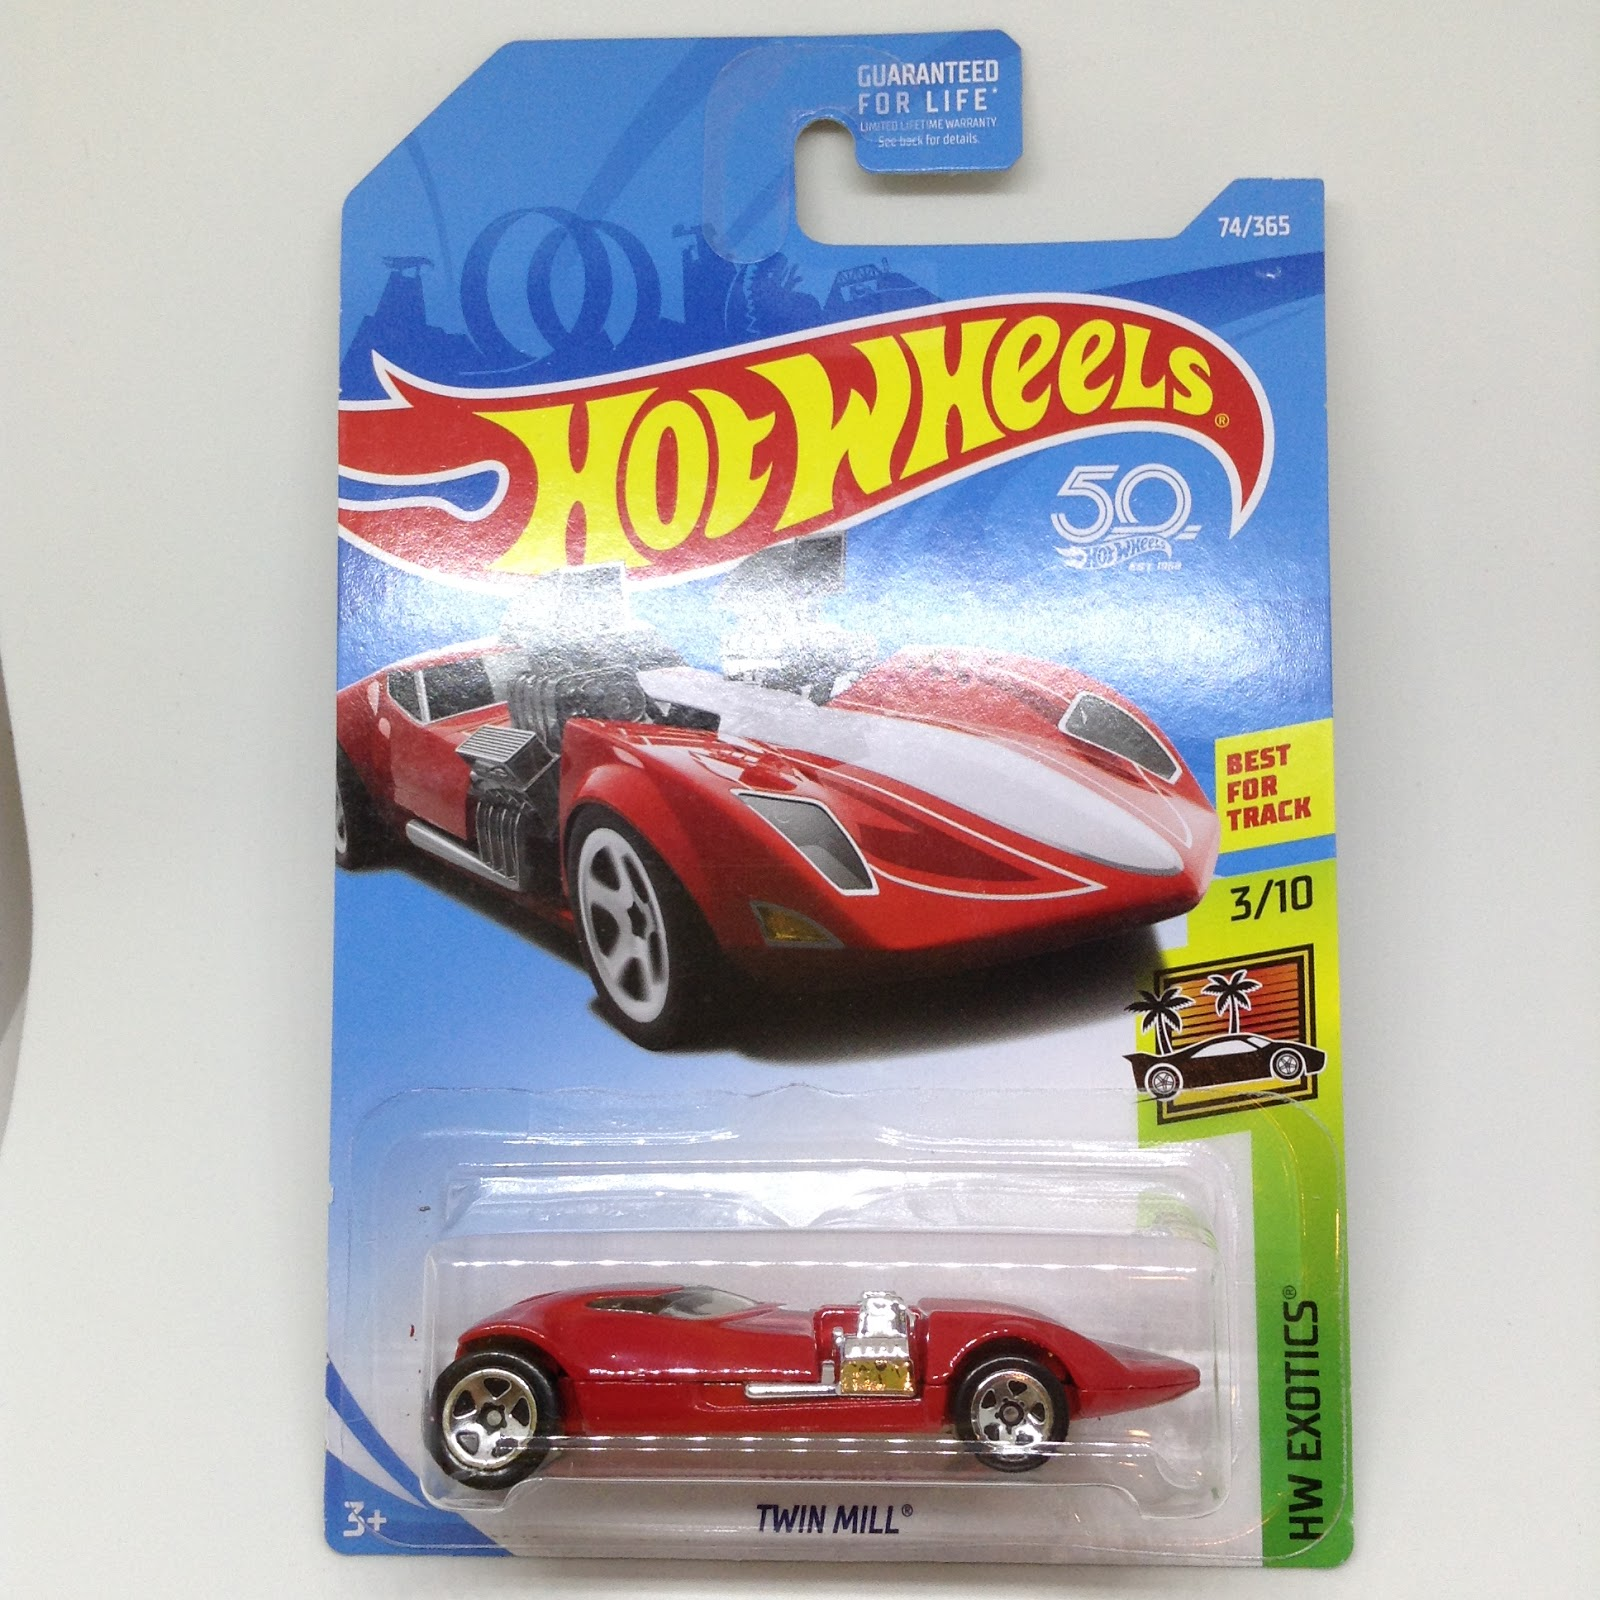 Julians Hot Wheels Blog Twin Mill 2018 Hw Exotics Hotwheels Mclaren 720s Glad To See The In Mainline It Wouldnt Feel Right Have 50th Anniversary Without Most Iconic Car